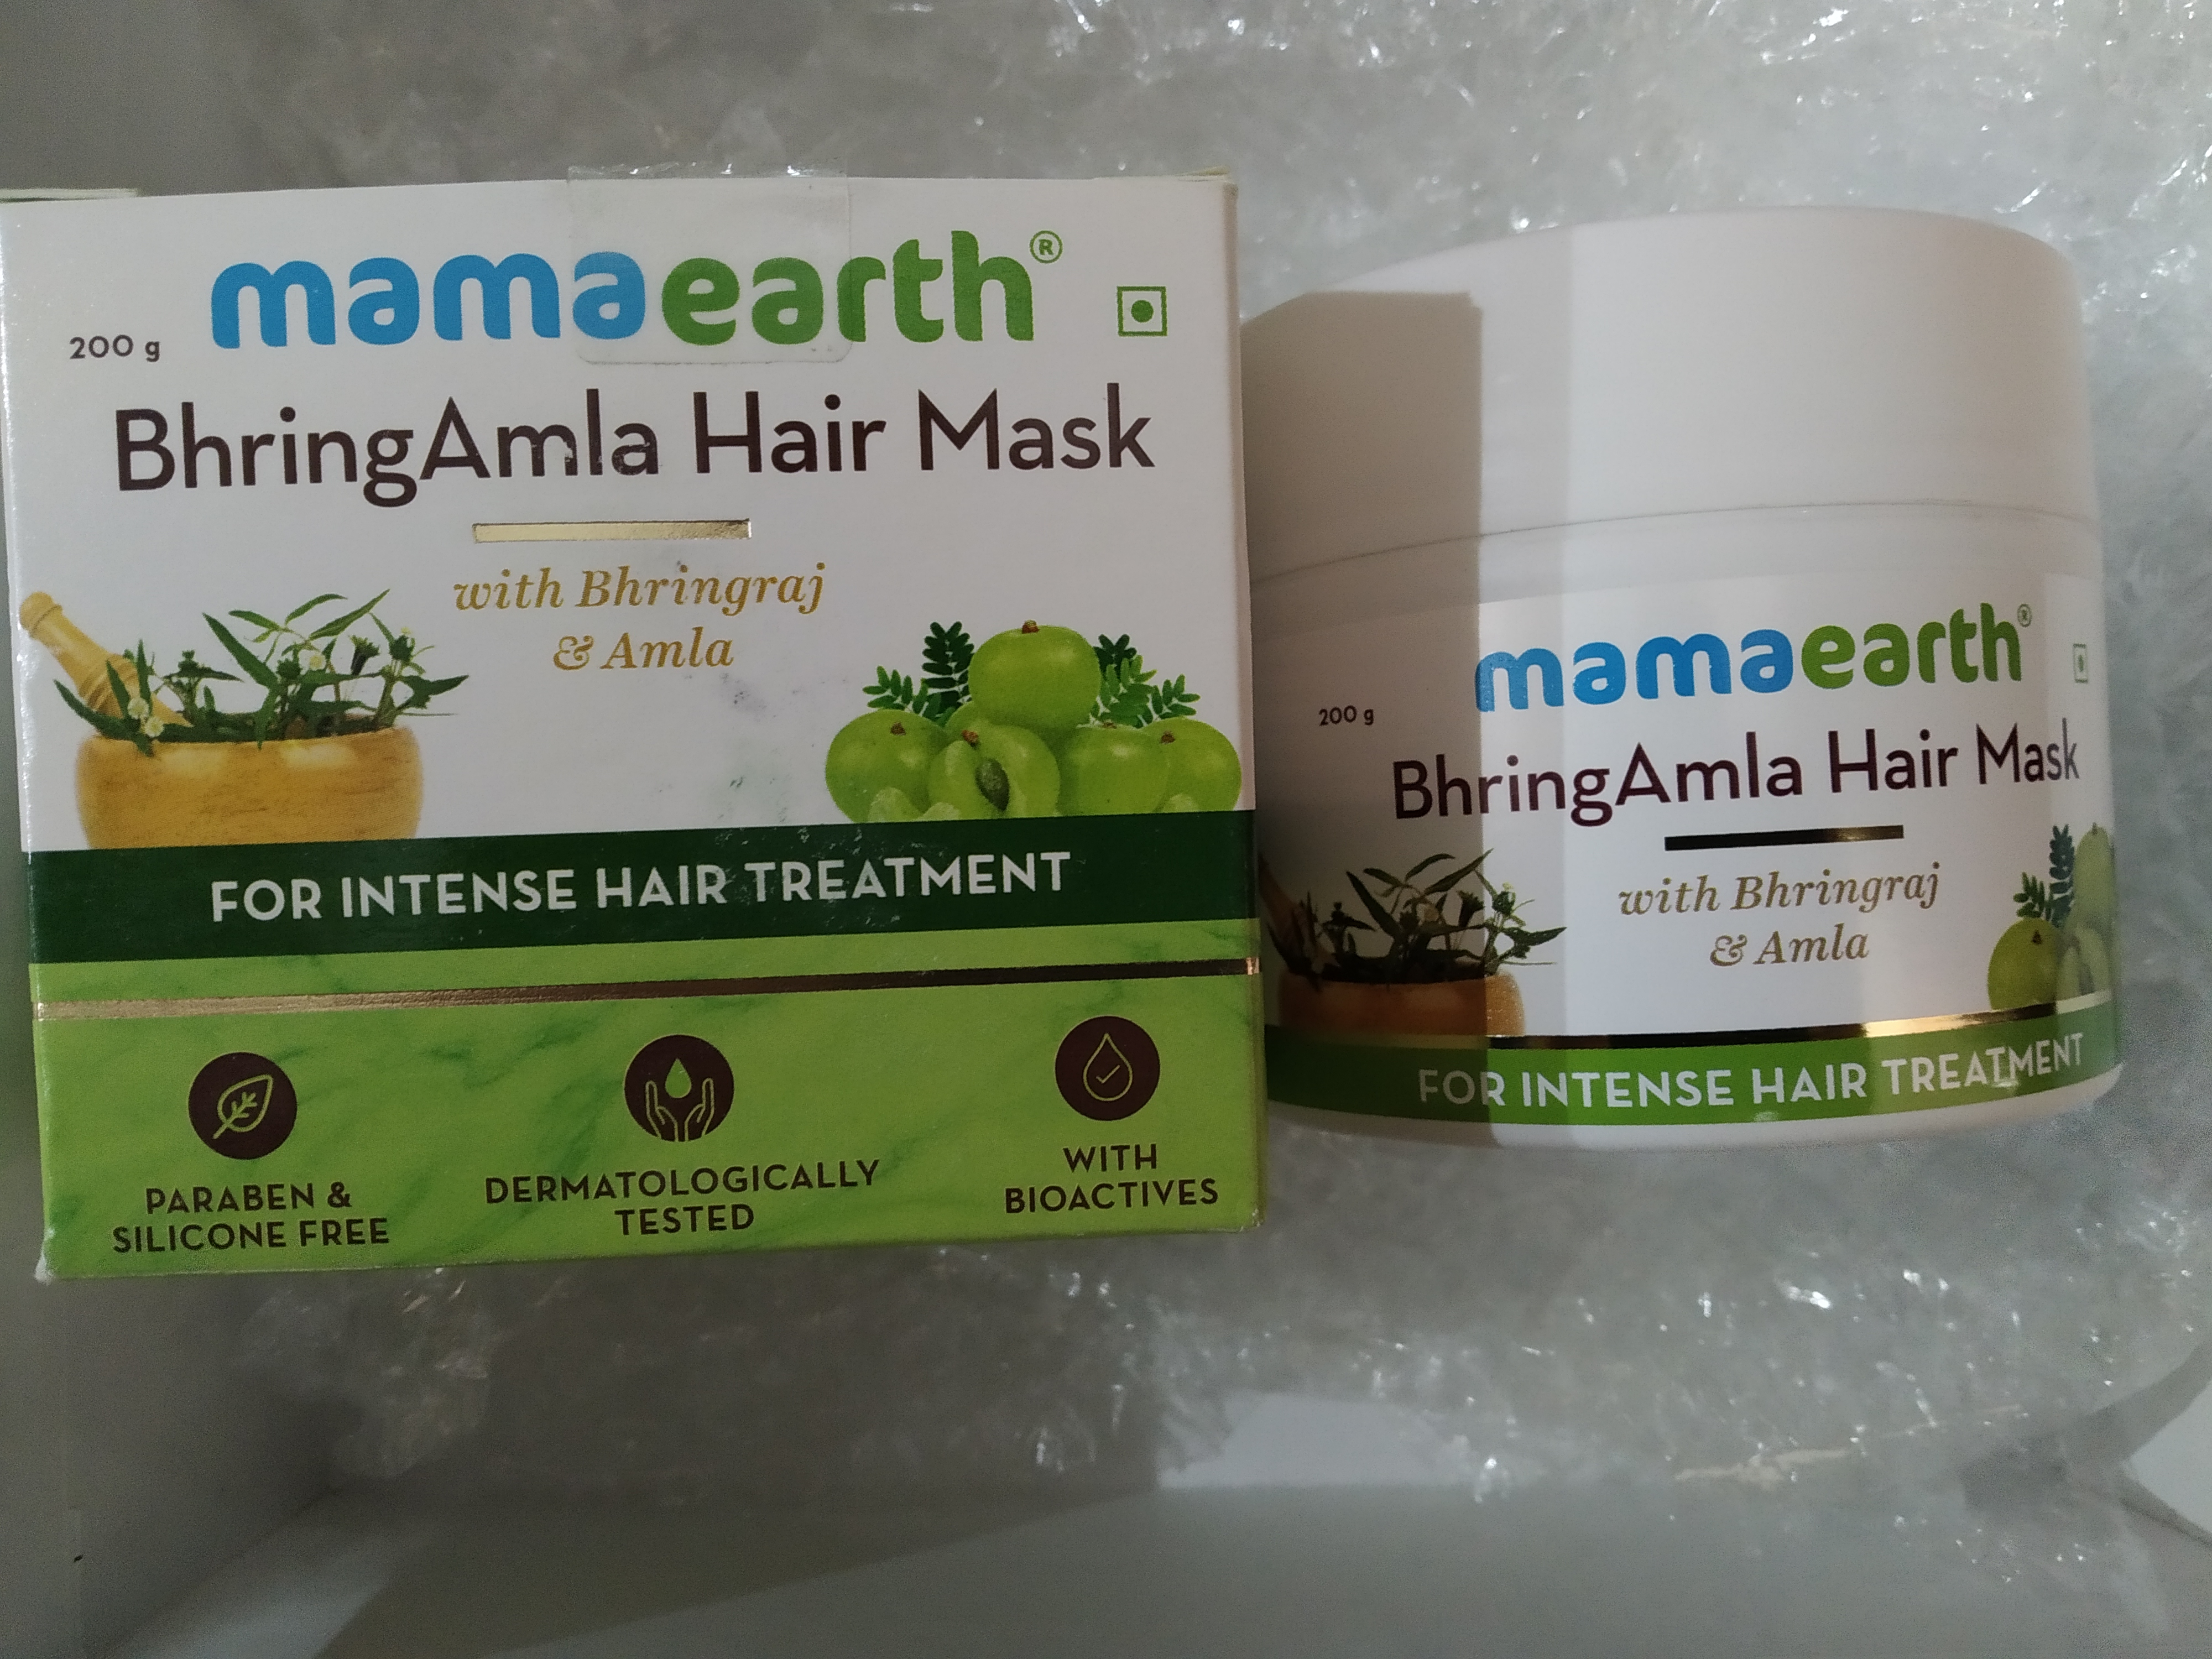 Mamaearth BhringAmla Hair Mask-Intense hair treatment-By deenapaike13